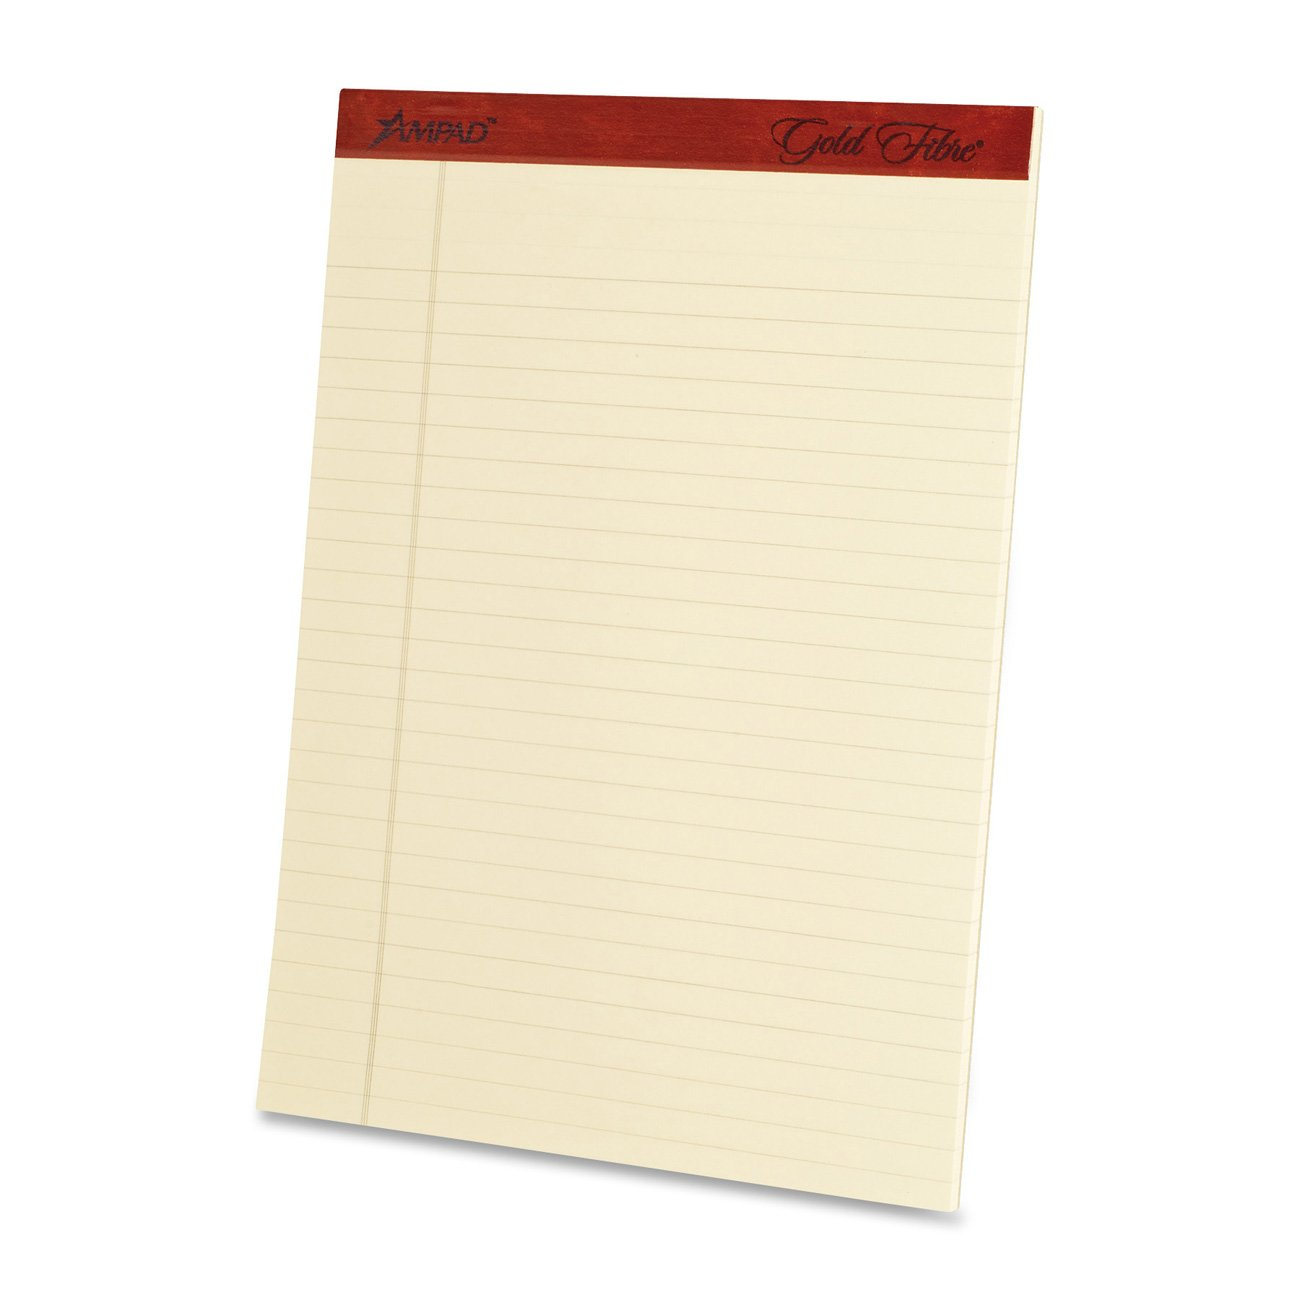 50-Sheet Pad 8.5 x 11.75 Inches 4 Pads per Pack 20-011 Ivory Ampad Heavyweight Writing Pad